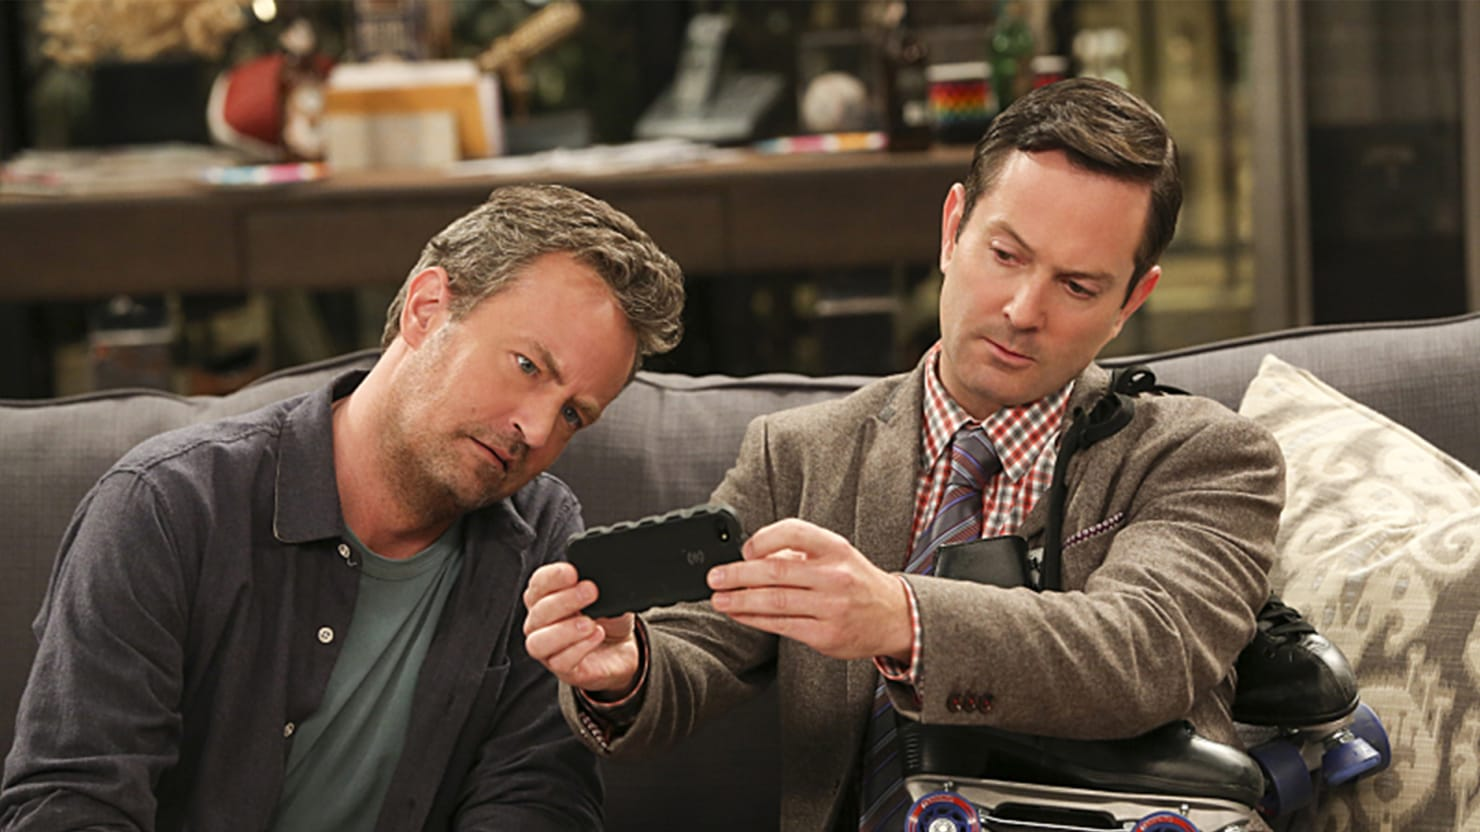 'The Odd Couple': The Laziest TV Show of All-Time